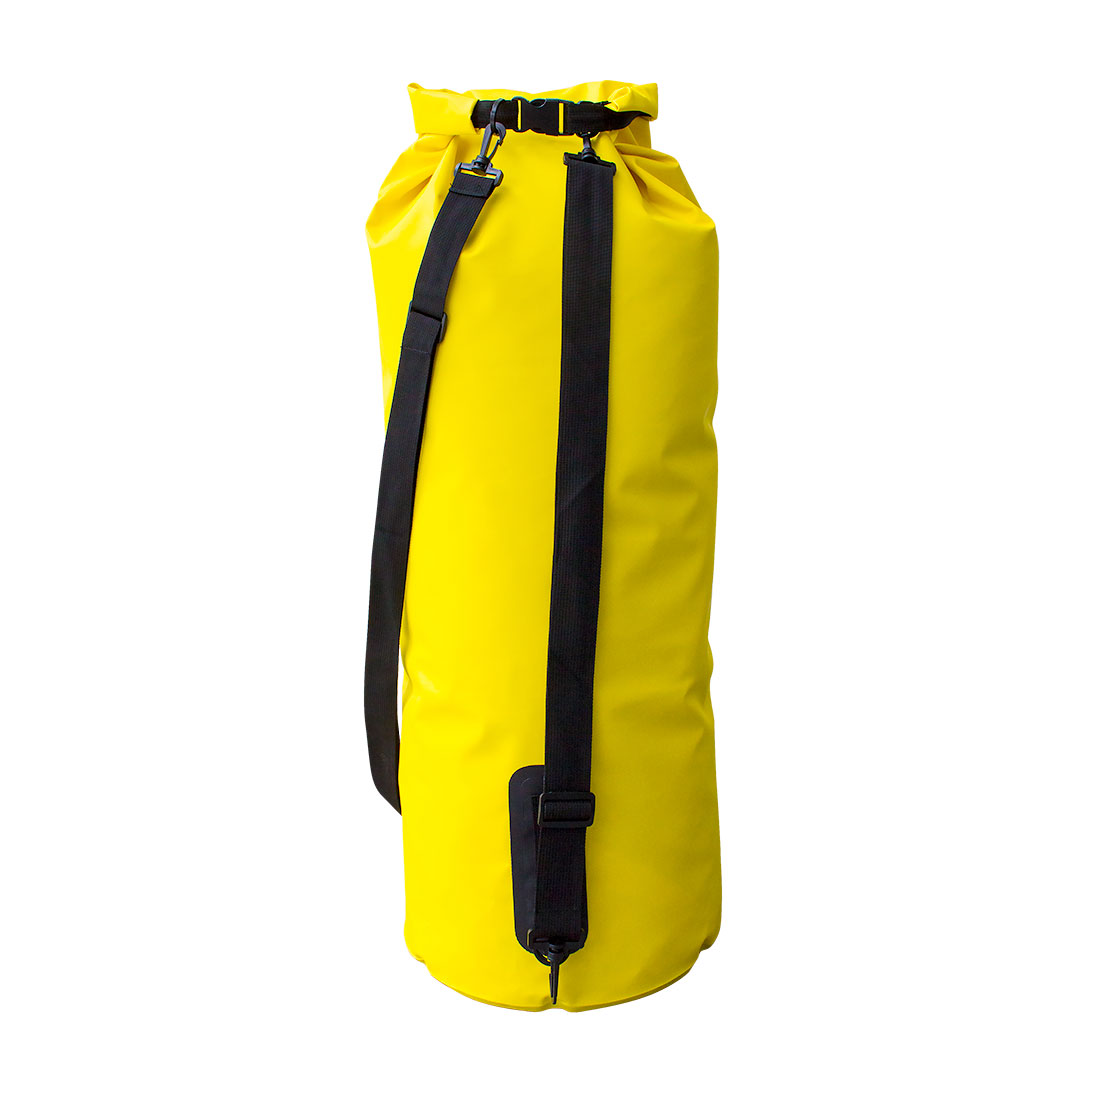 Portwest Waterproof Dry Bag 60L - B912